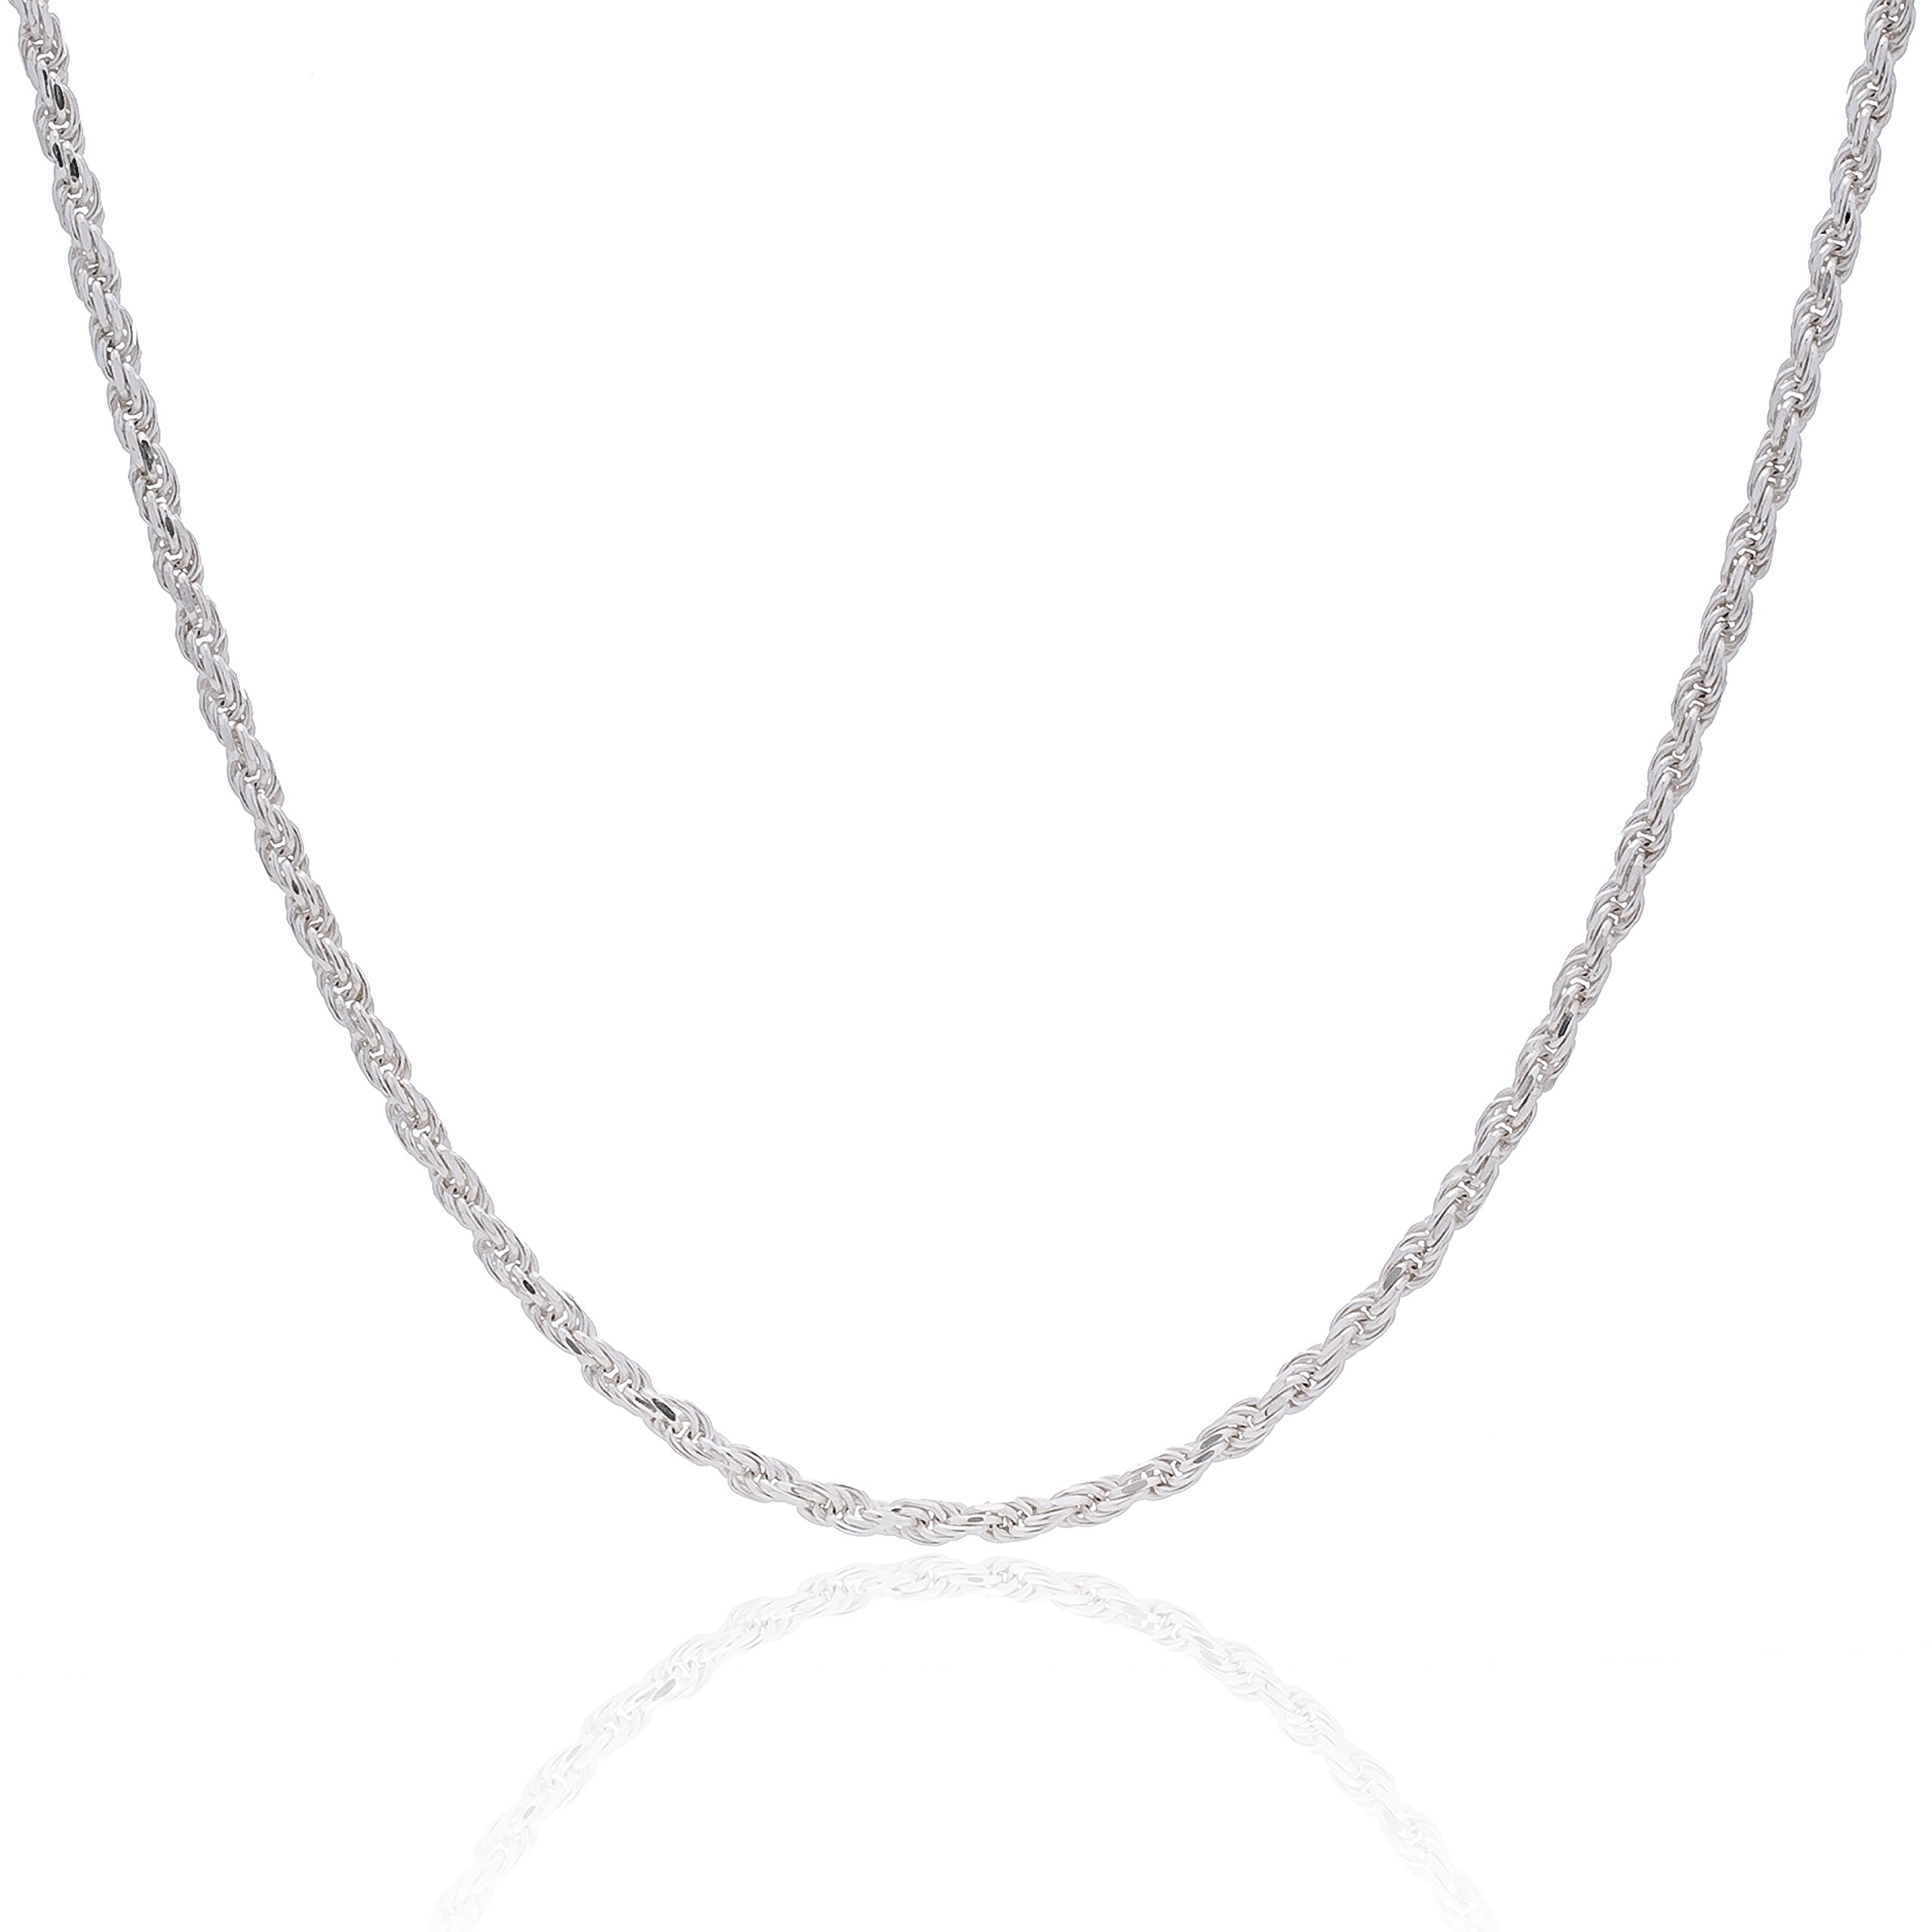 925 Sterling Silver 3MM Rope Chain Lobster Claw Clasp - 24'' by Designer Sterling Silver (Image #2)